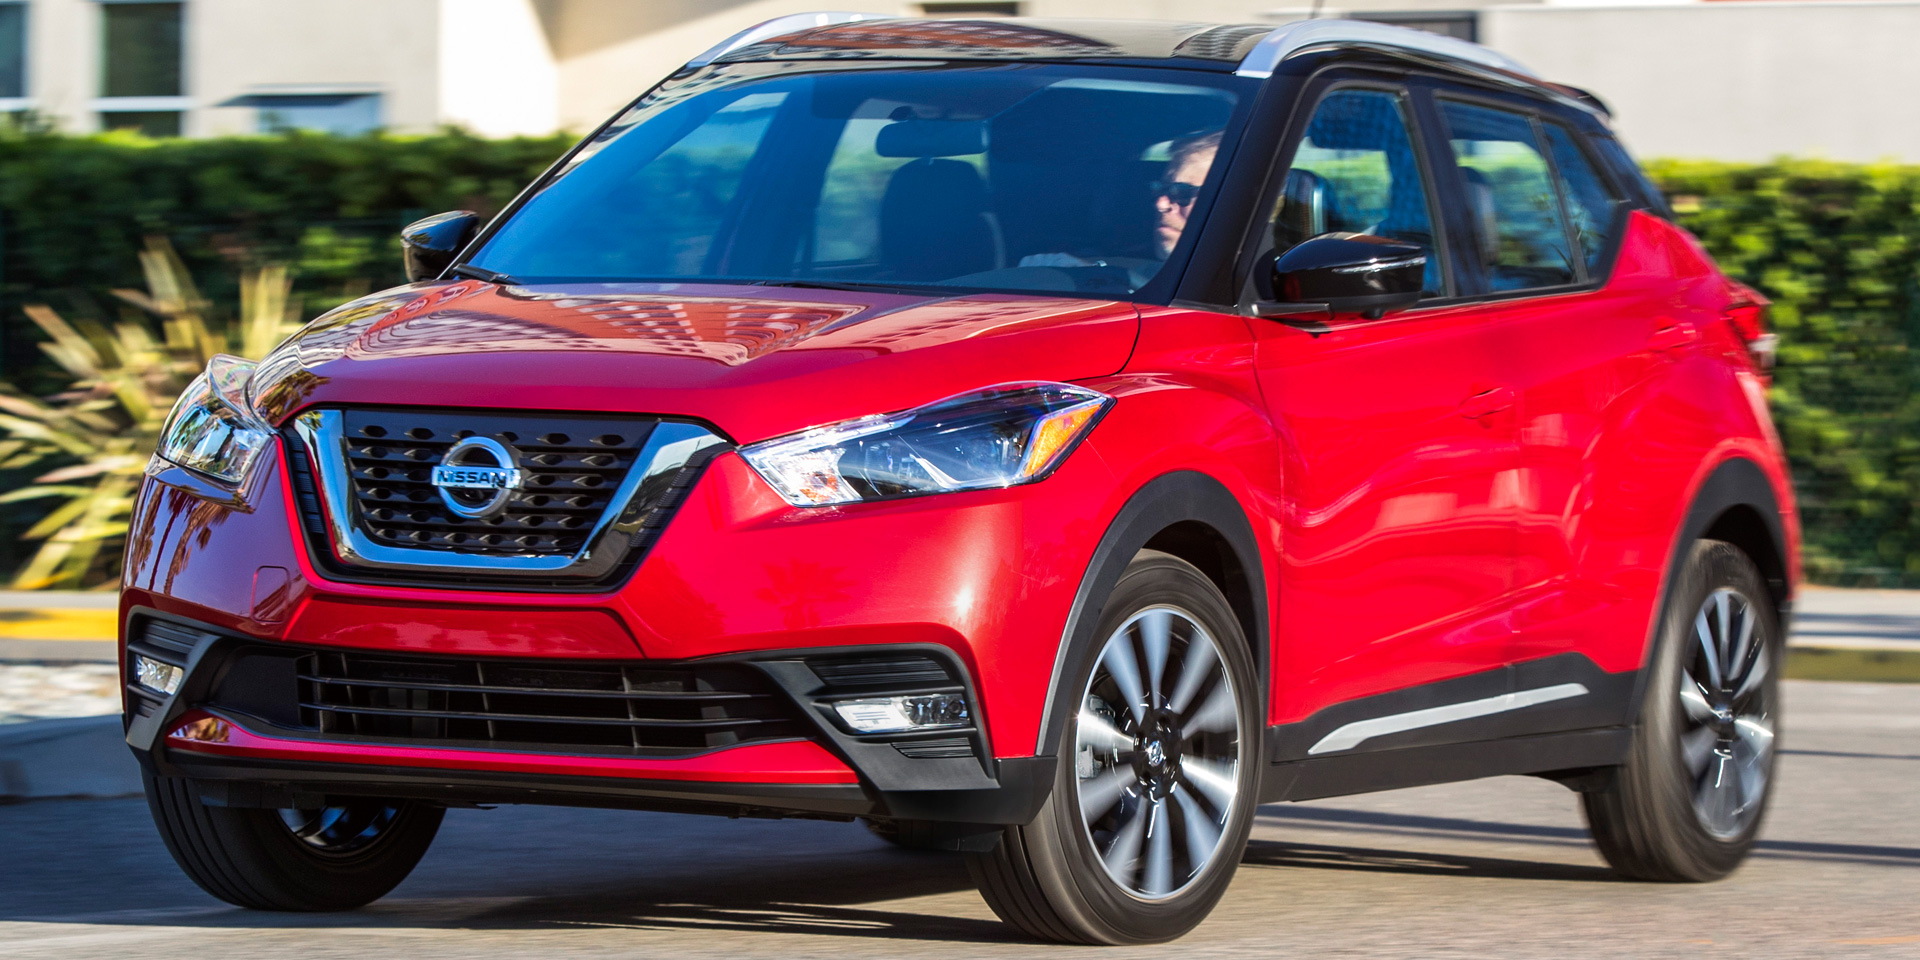 2019 Nissan Kicks Vehicles On Display Chicago Auto